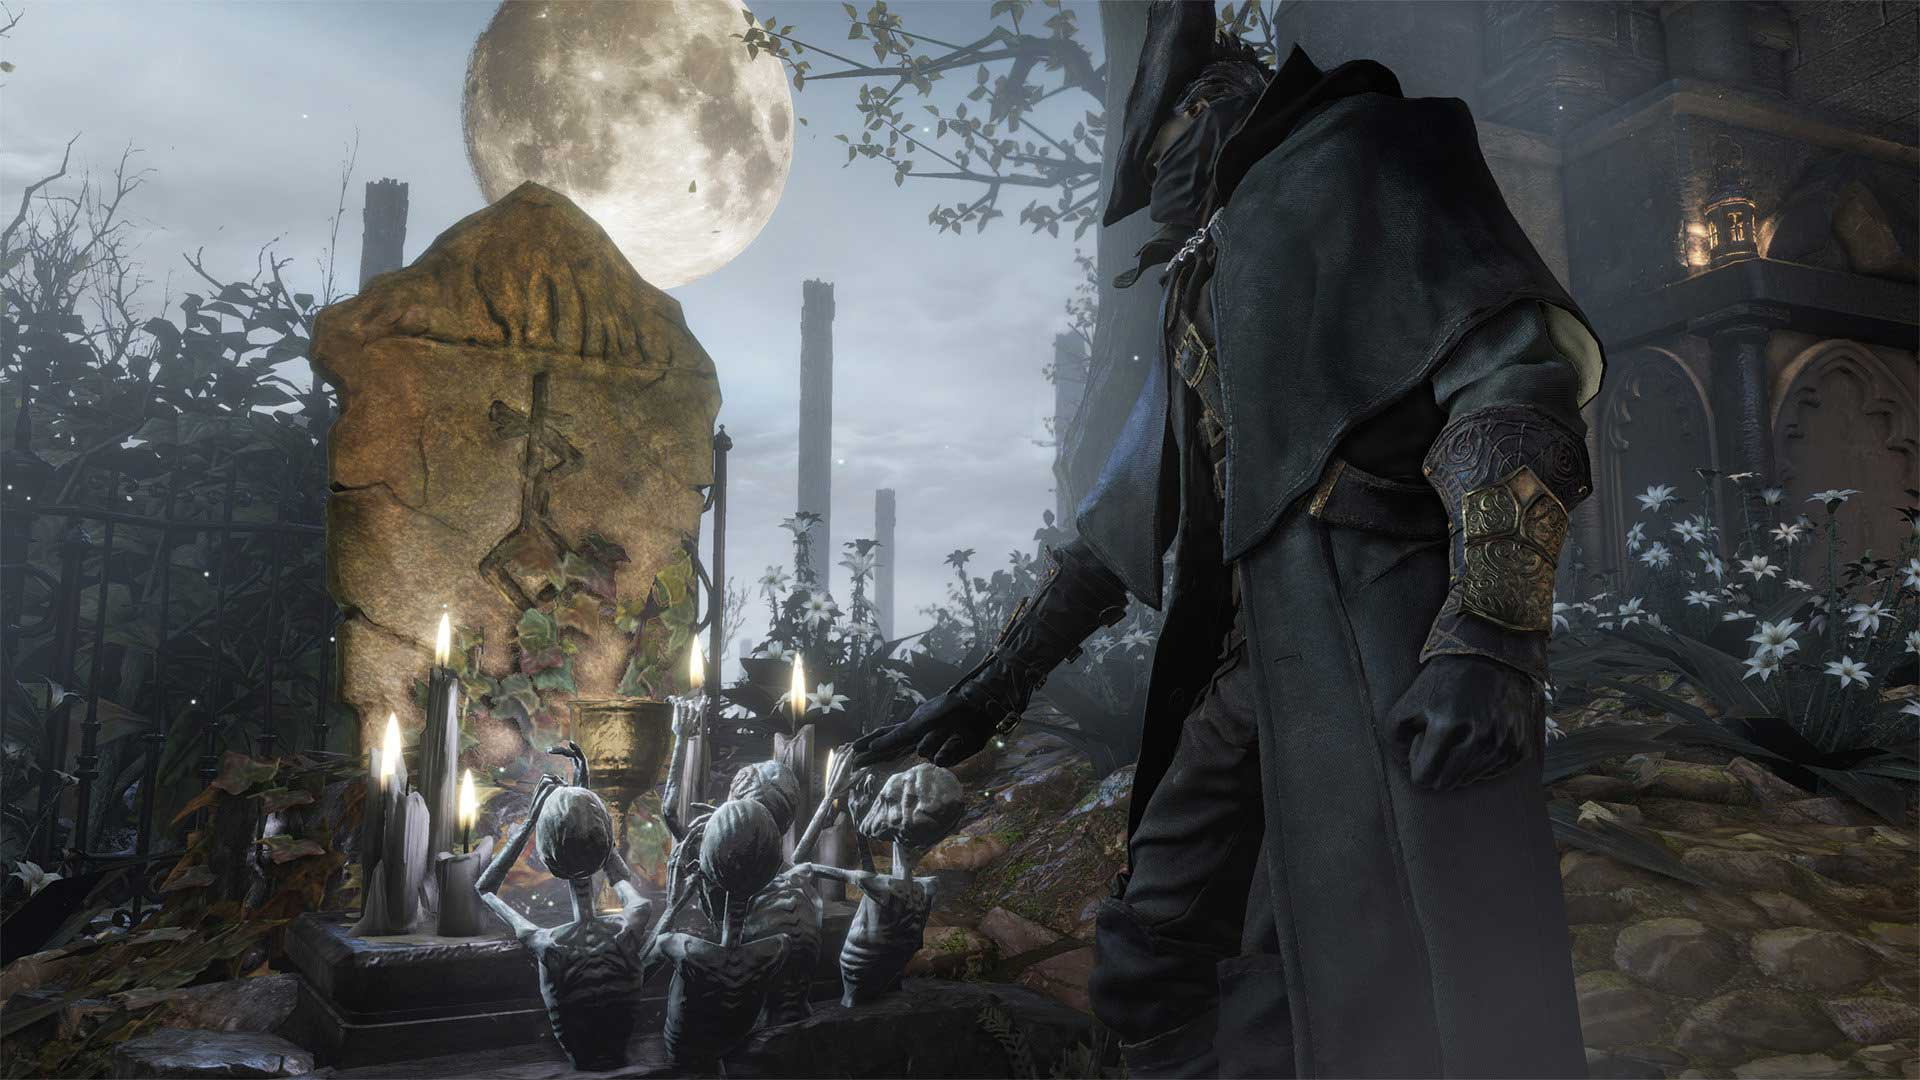 bloodborne_multiplayer_pvp_co-op_network_features_1